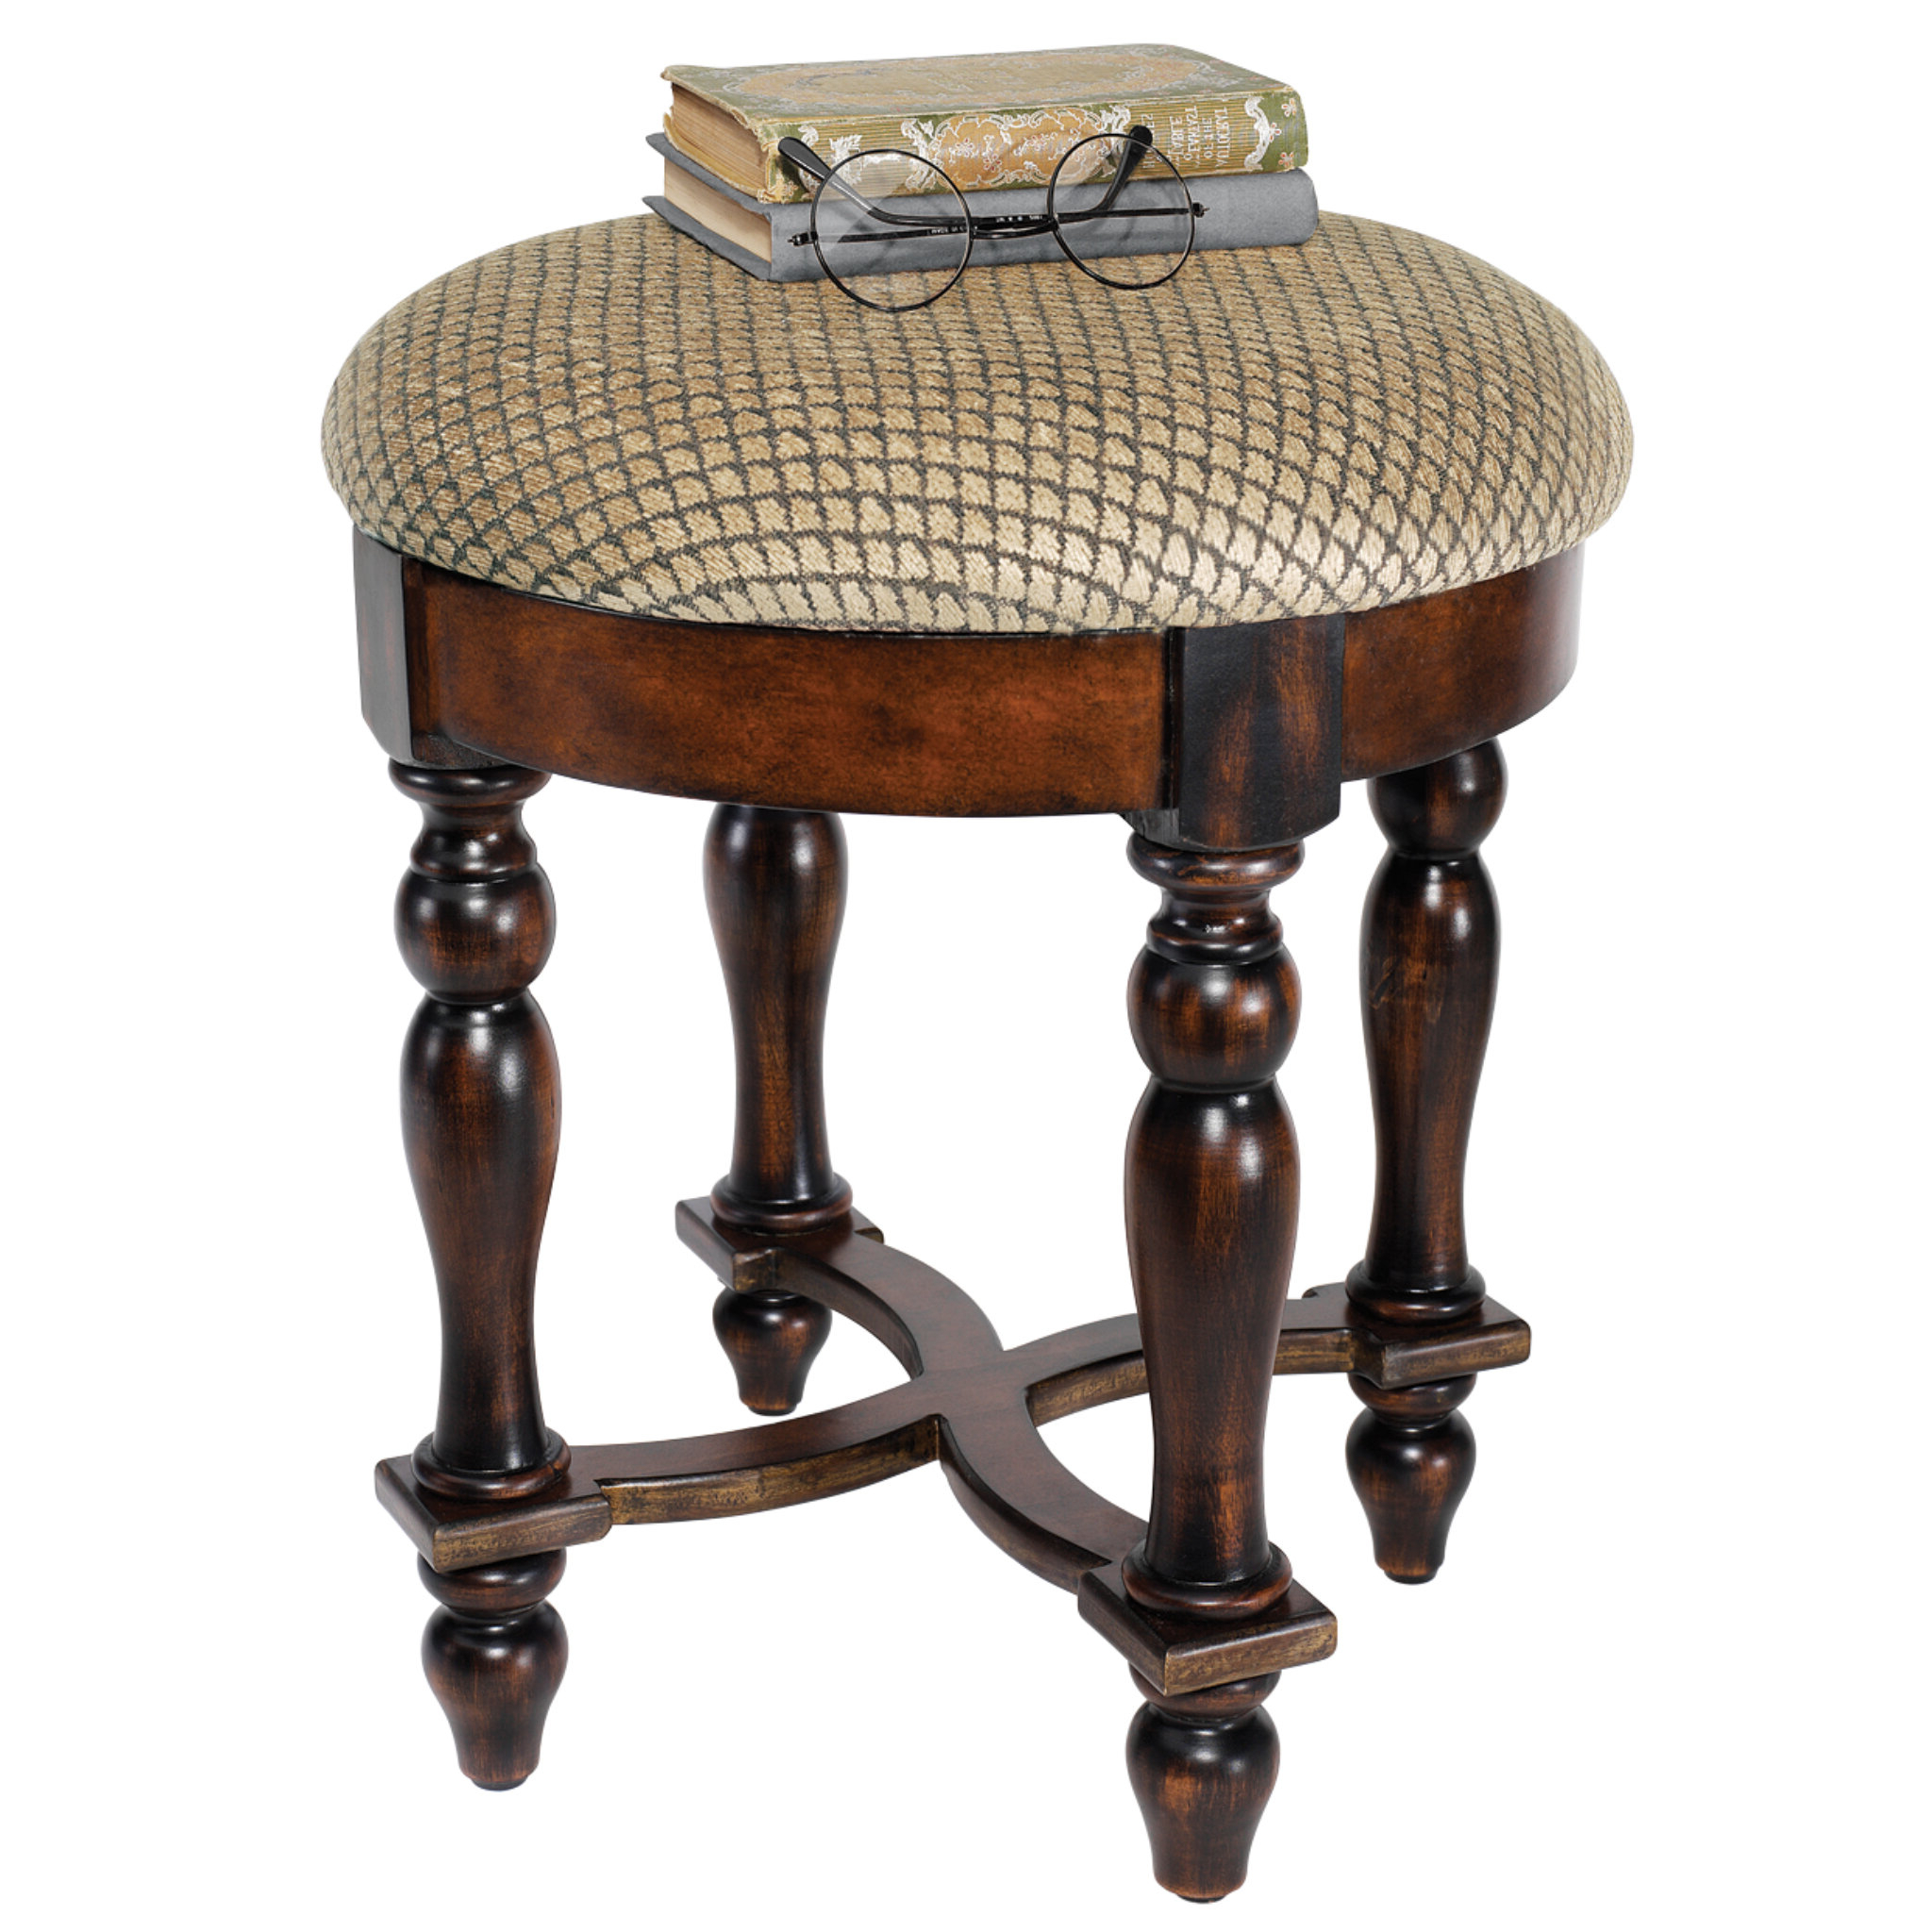 Middlet Owl Ceramic Garden Stools Within Well Known Grand Duchess Boudoir Accent Stool (View 24 of 30)